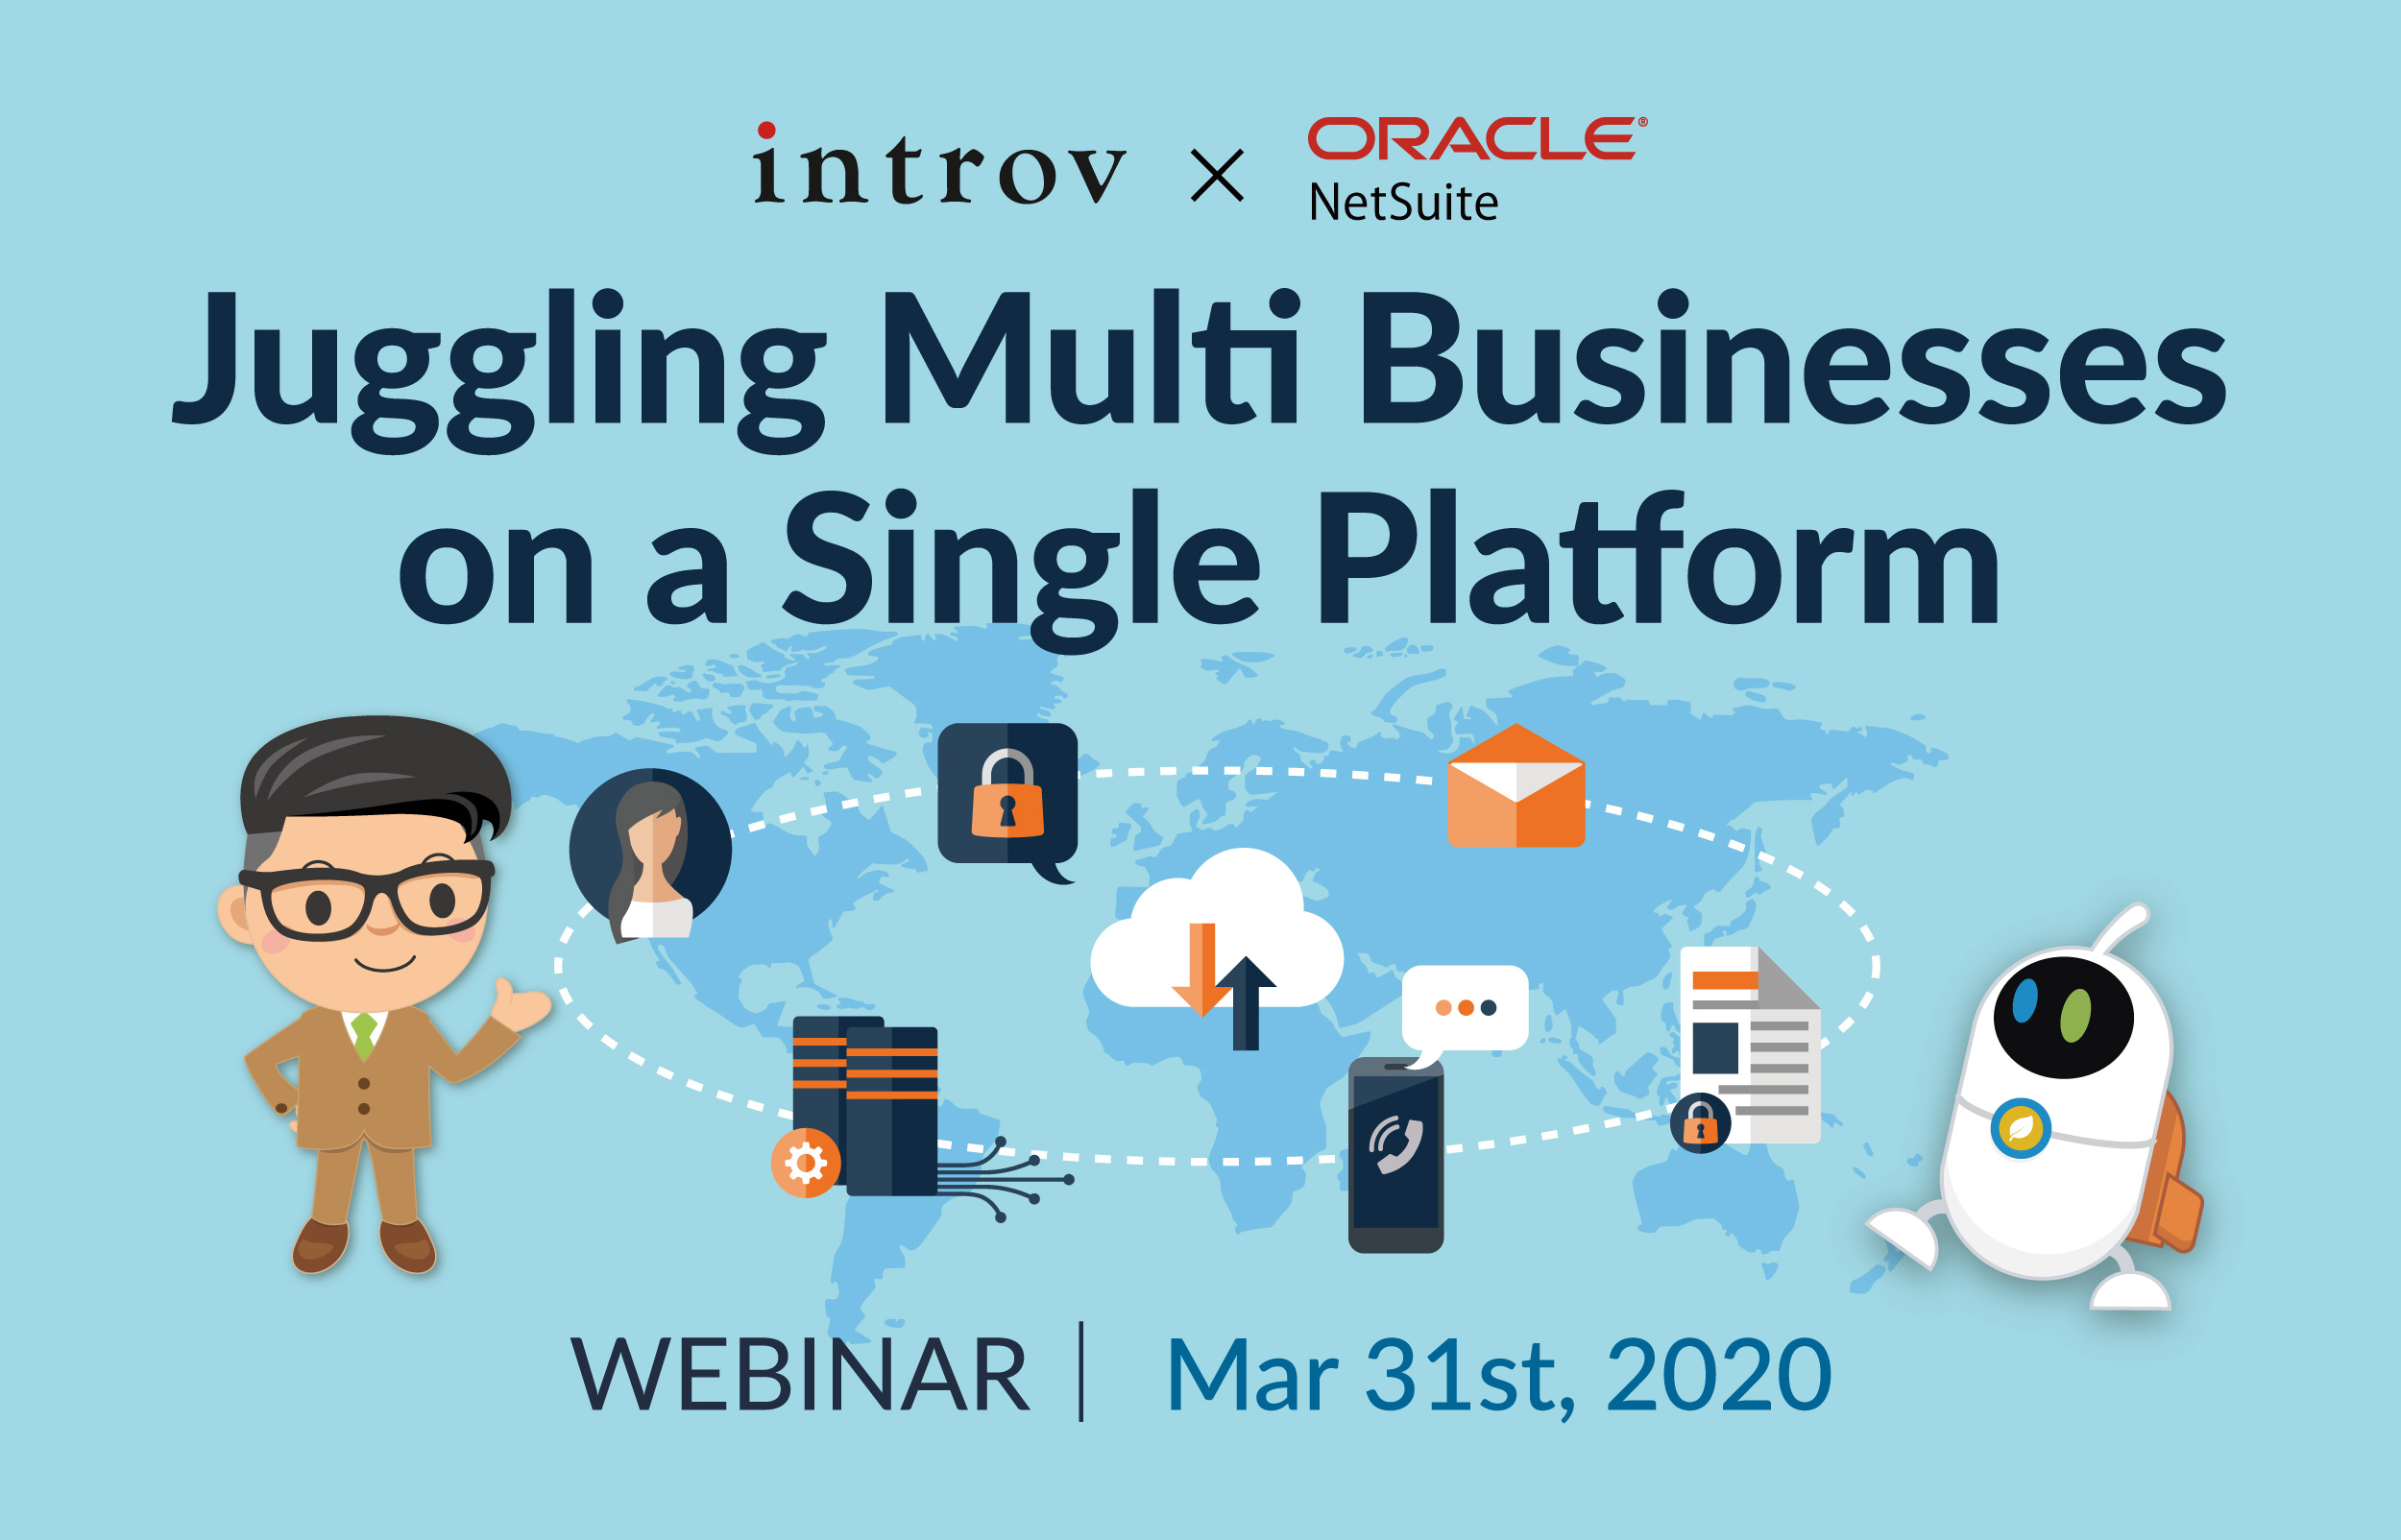 Webinar: Juggling Multi Businesses on a Single Platform (March 31st, 2020)